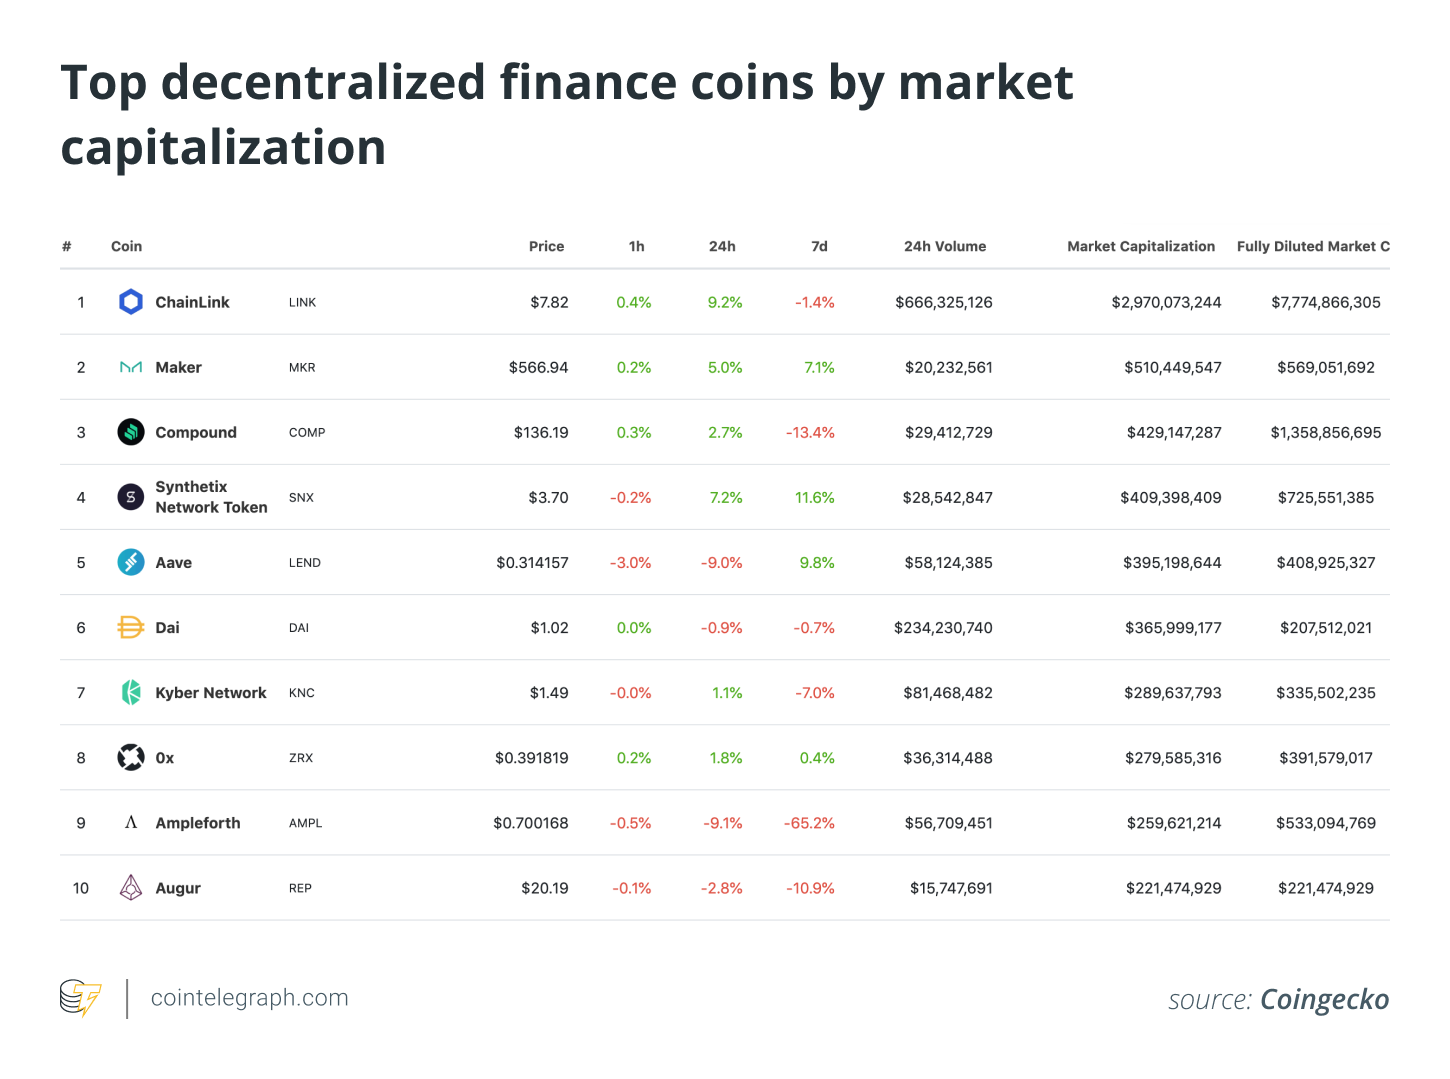 Top decentralized finance coins by market capitalization